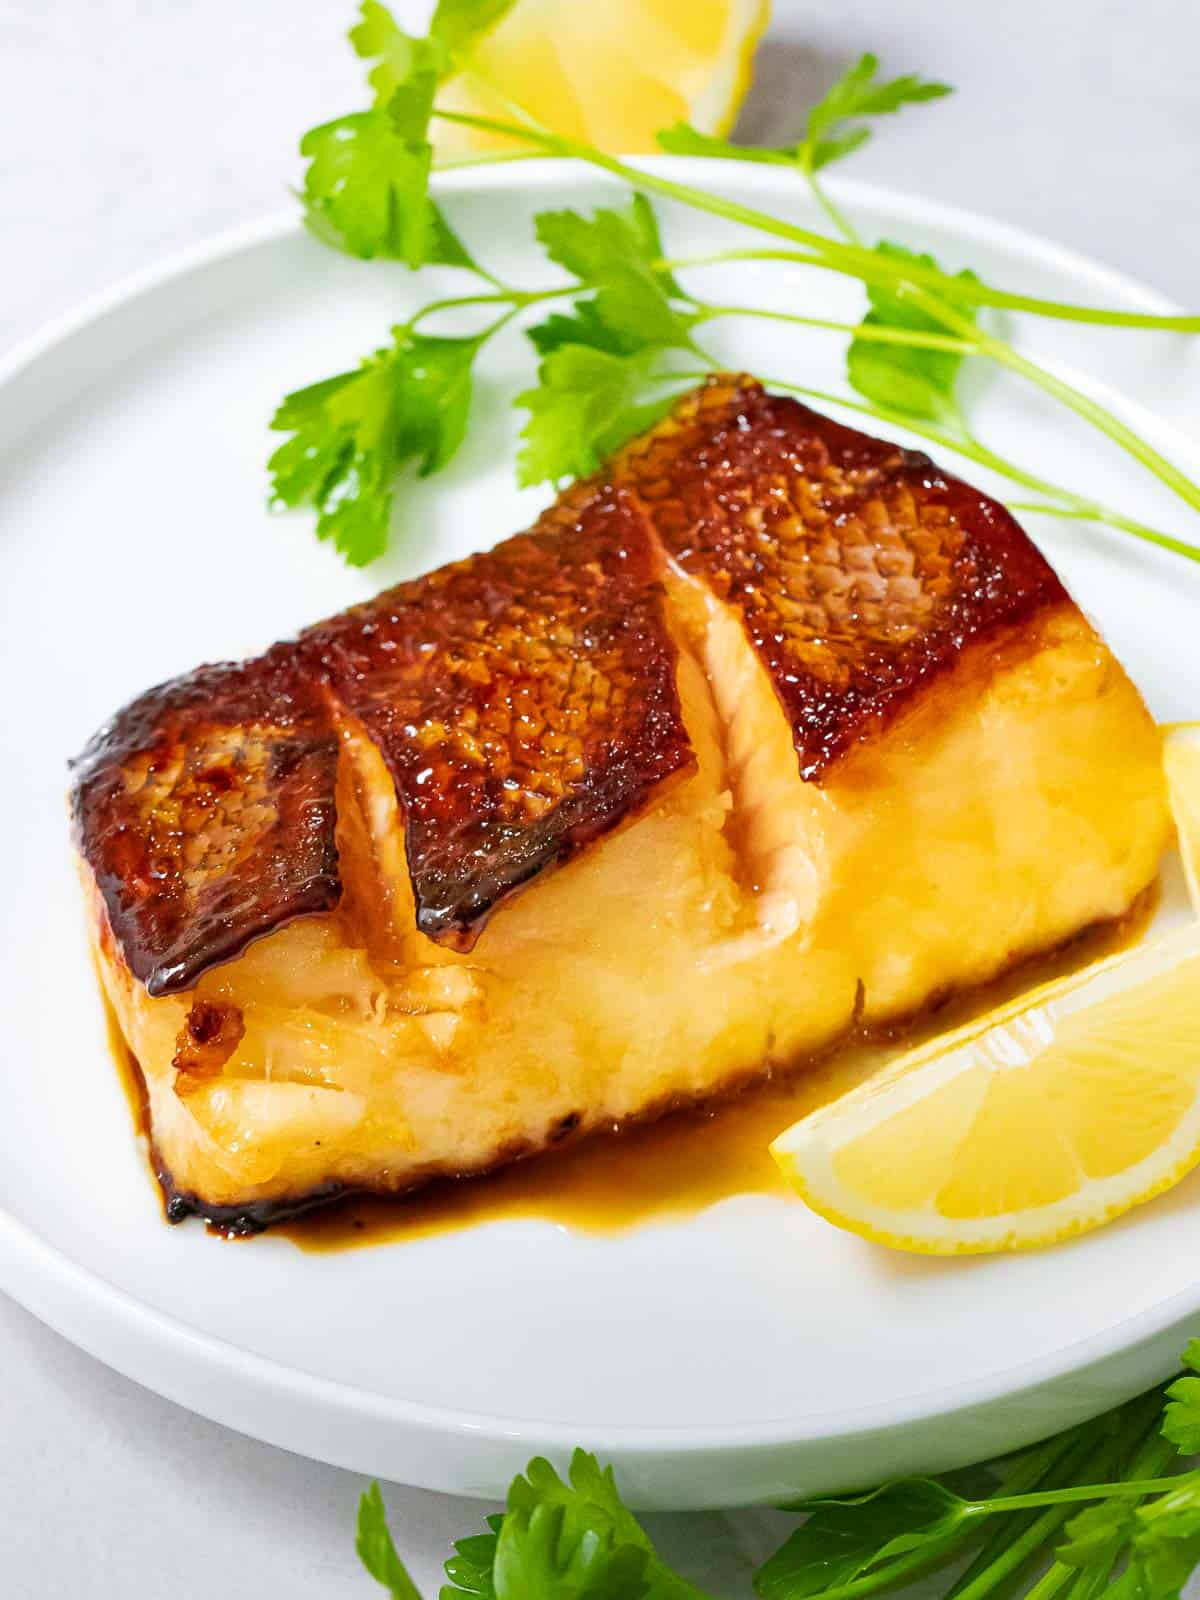 Chilean sea bass with crispy, golden brown skin marinated in Asian soy ginger marinade on a white plate next to lemon and parsley.